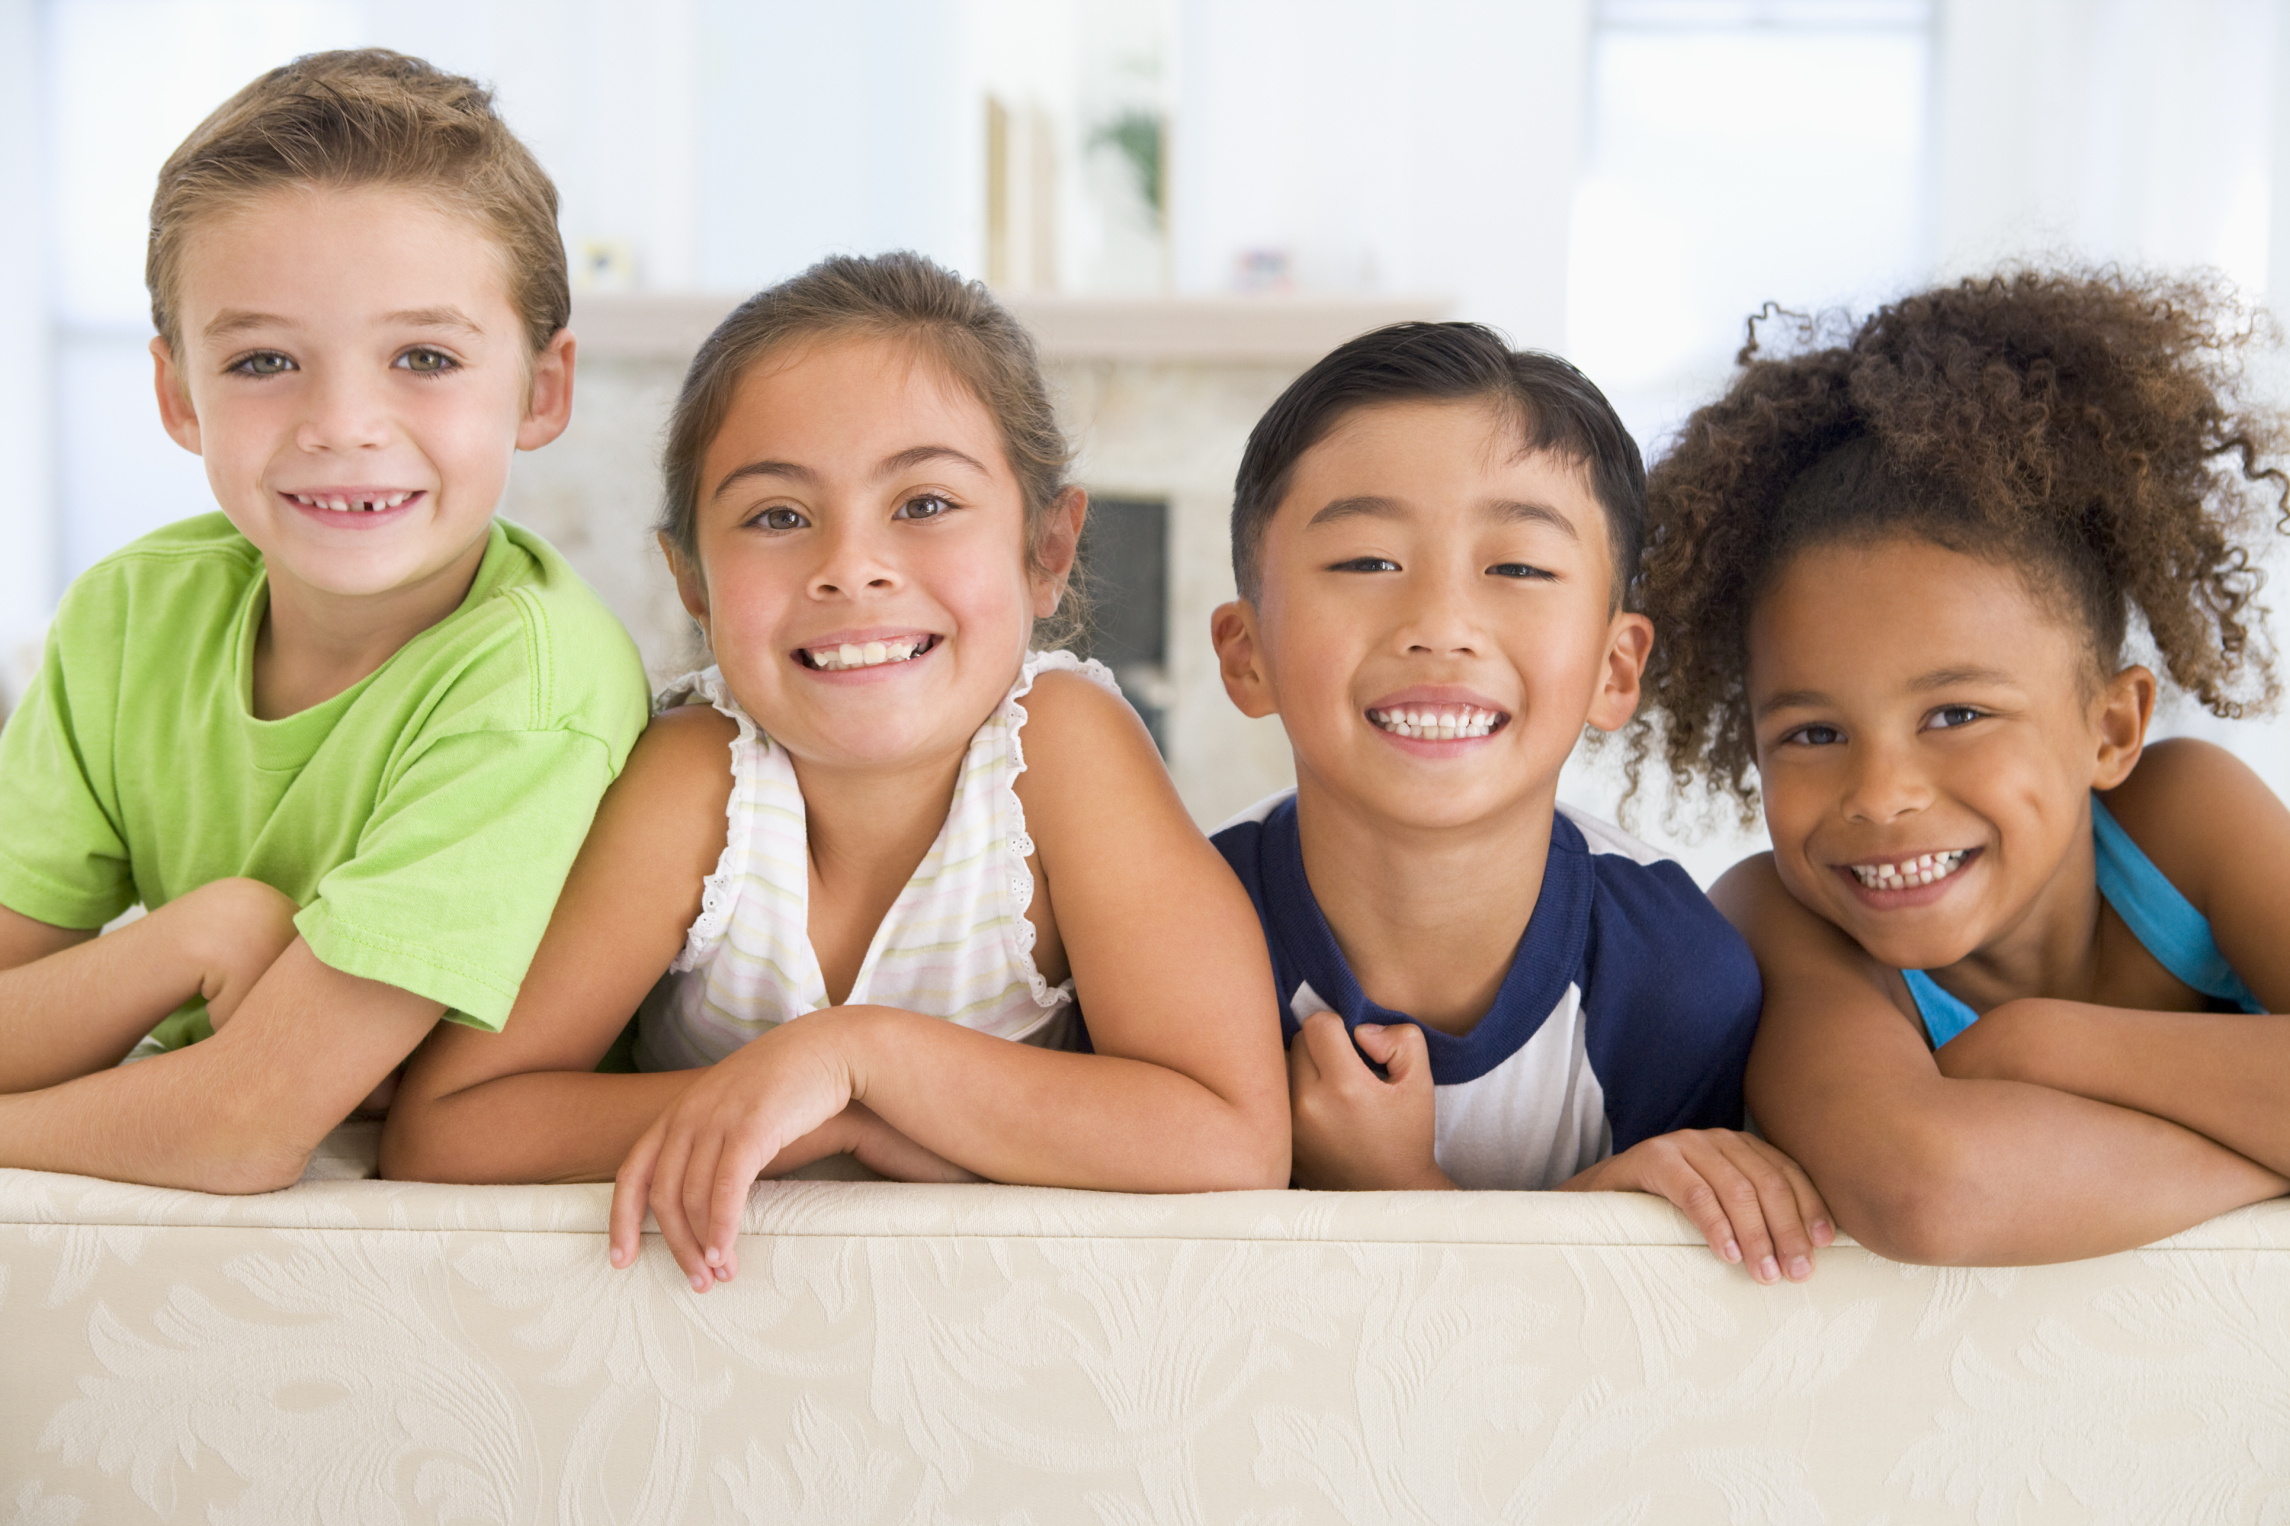 4-Little-Kids-Smiling.jpg